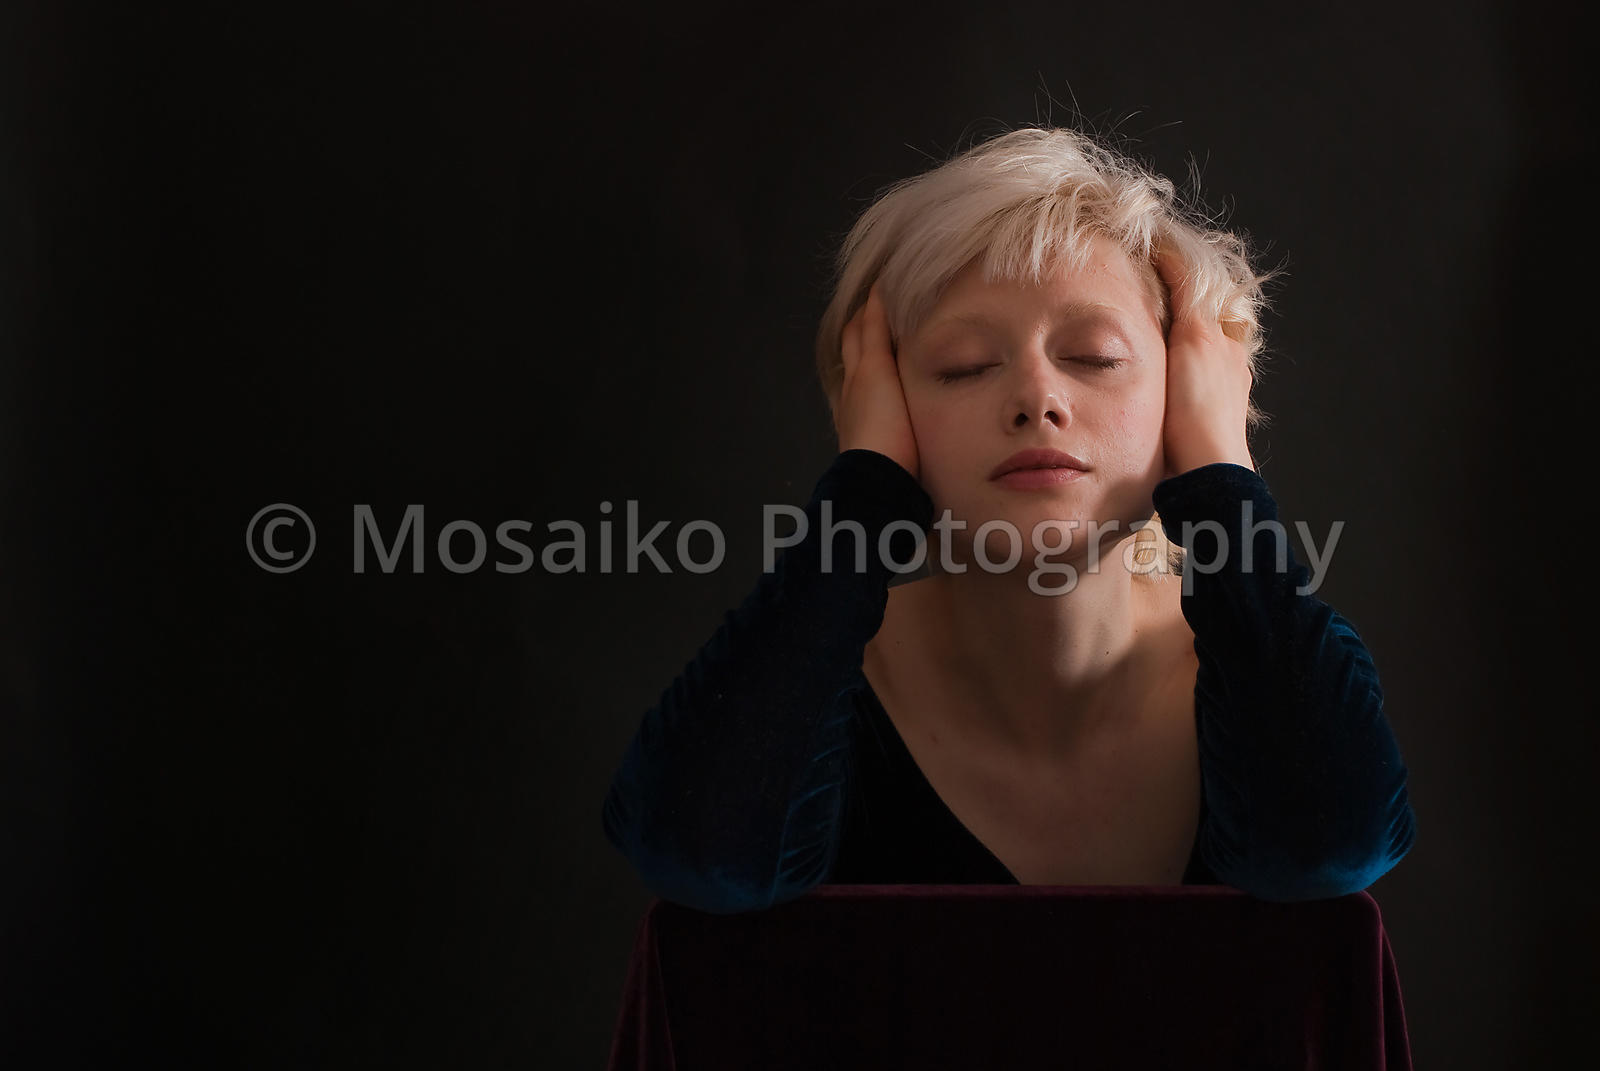 Young blond woman with closed eyes on black background - romantic portrait - studio shot